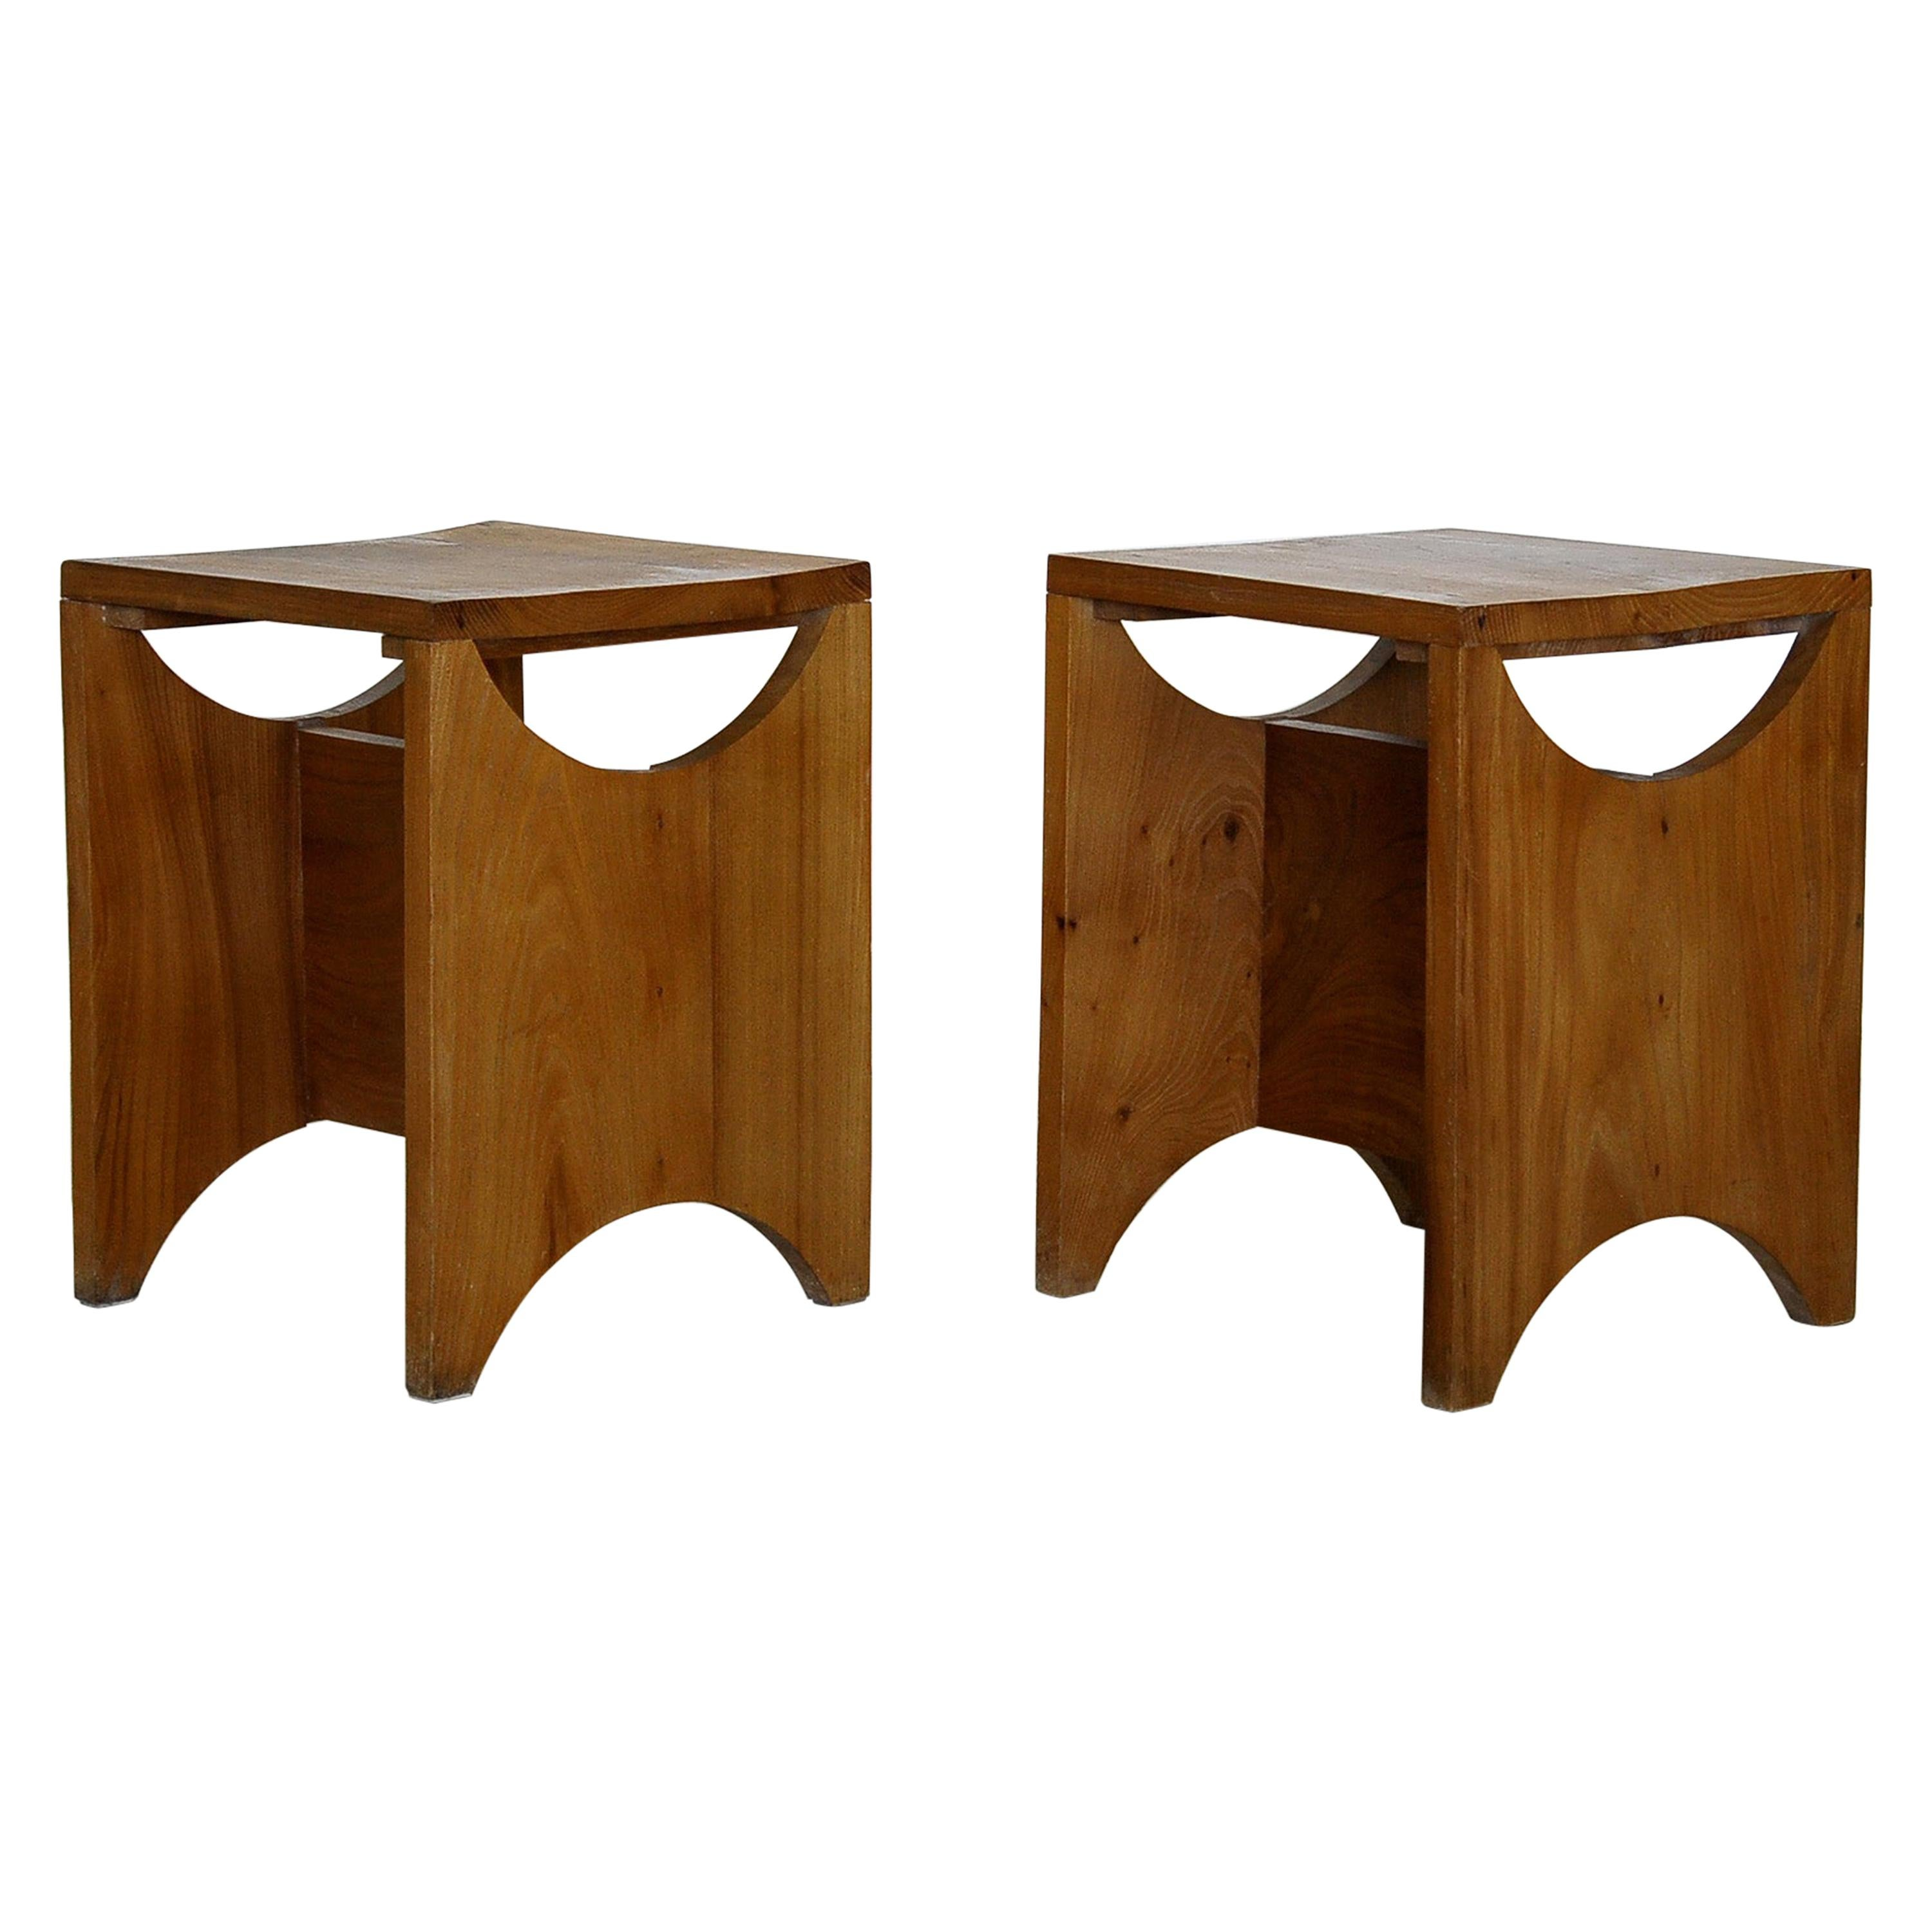 Set of Two Studio Stool, Solid Elmwood, France, 1970s